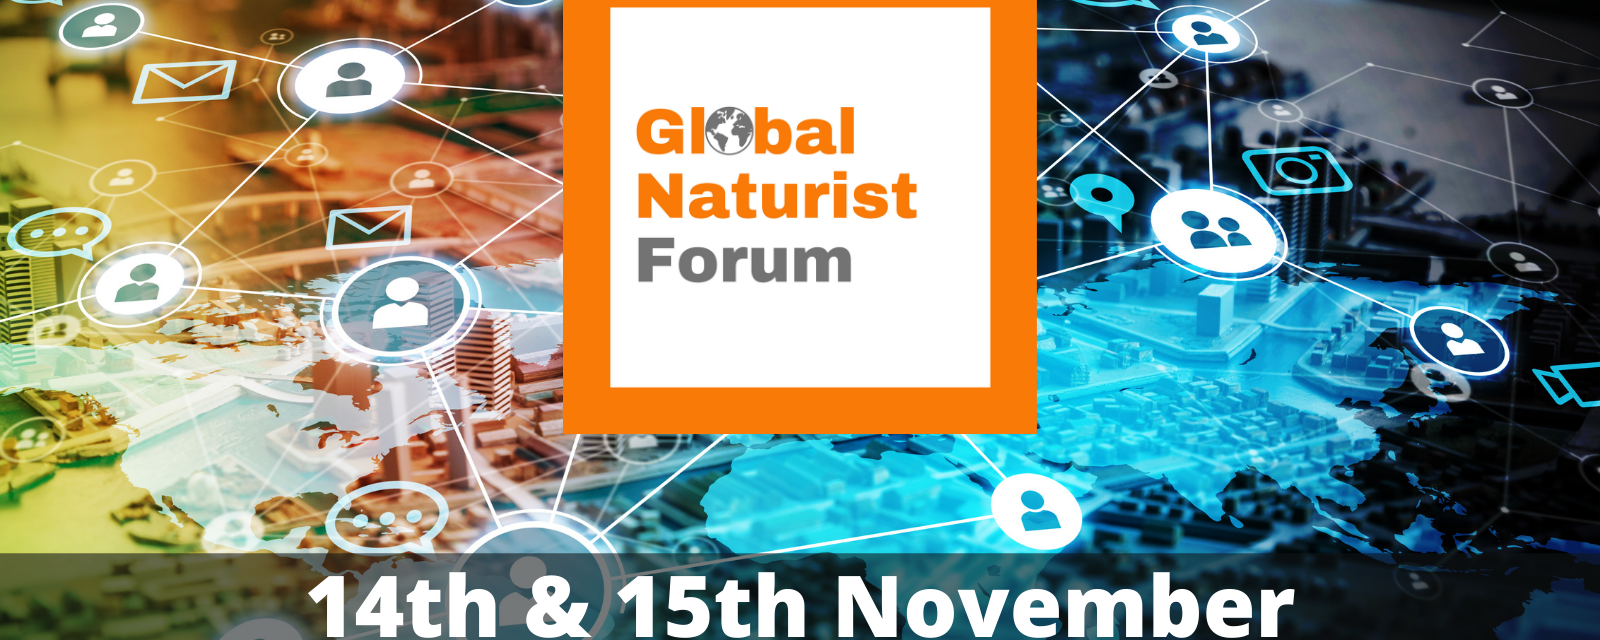 Join the Global Naturist Forum together